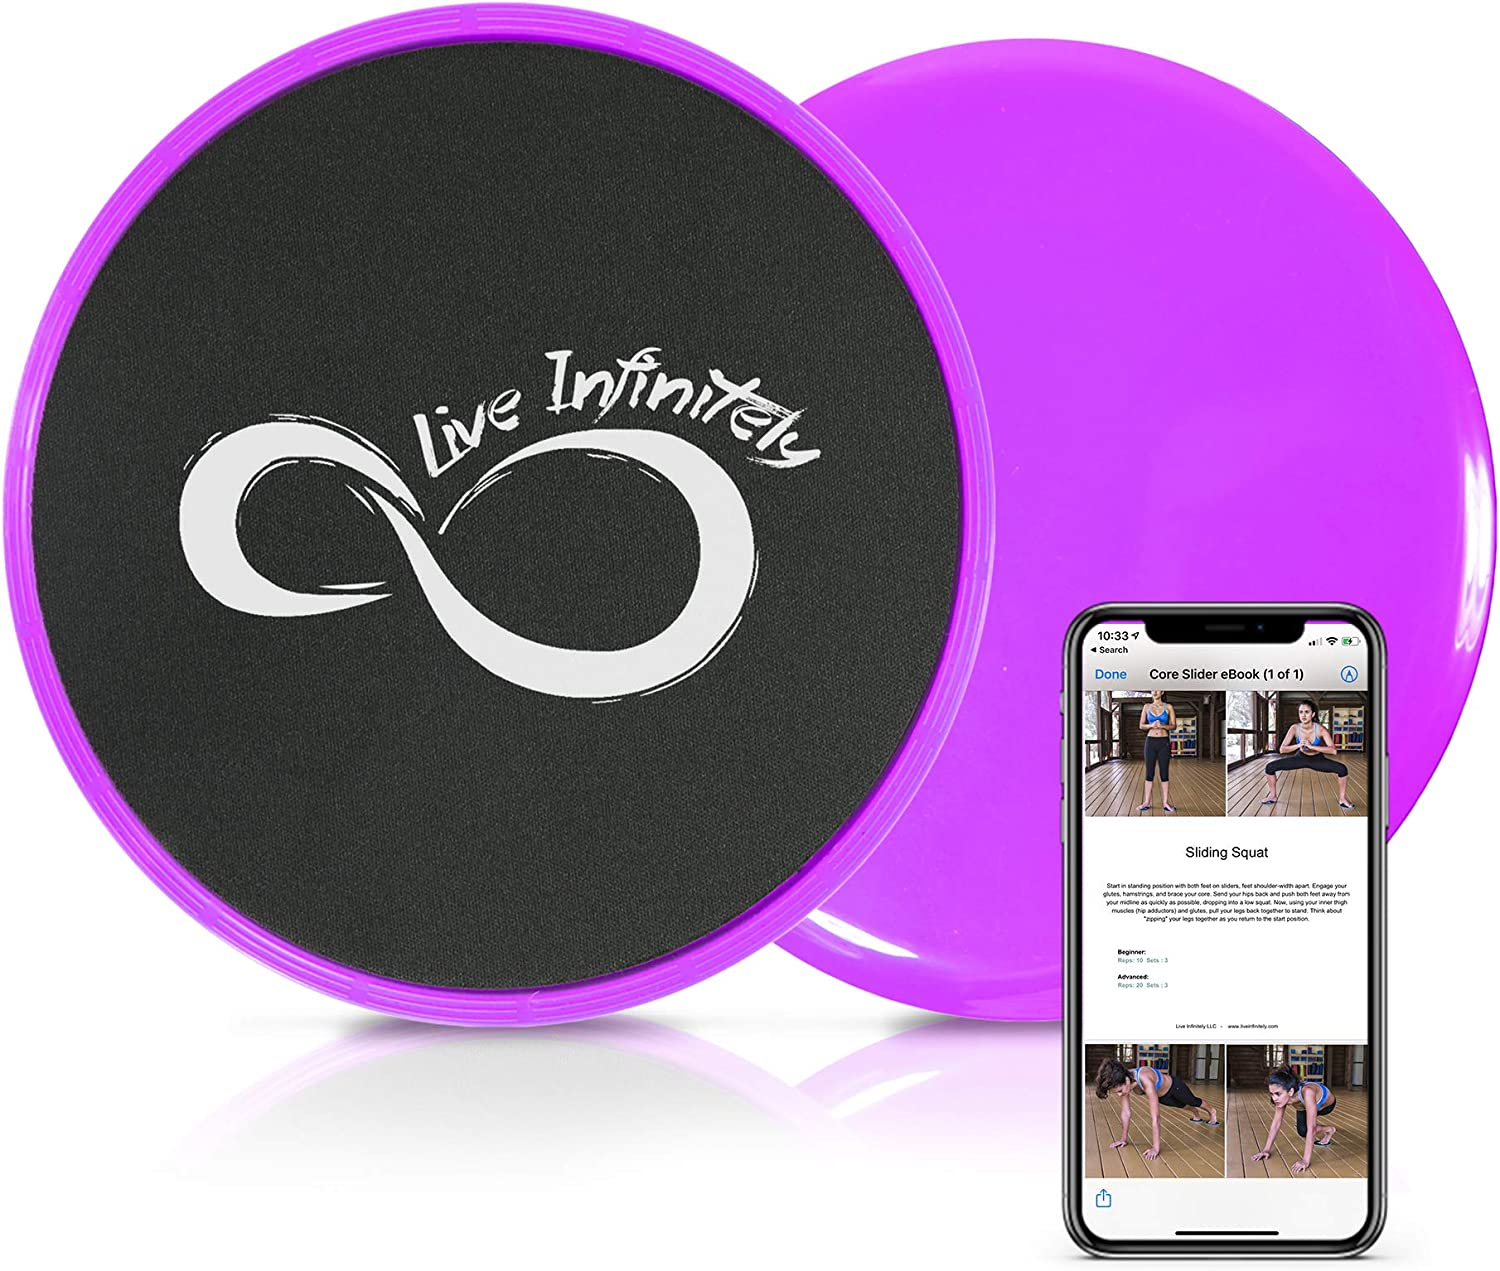 Live Infinitely Core Sliders – Dual Sided Fitness Sliders for Hardwood Or Carpeted Surfaces – Ideal for Ab & Core Workouts – Includes eBook of Exercises & Workouts